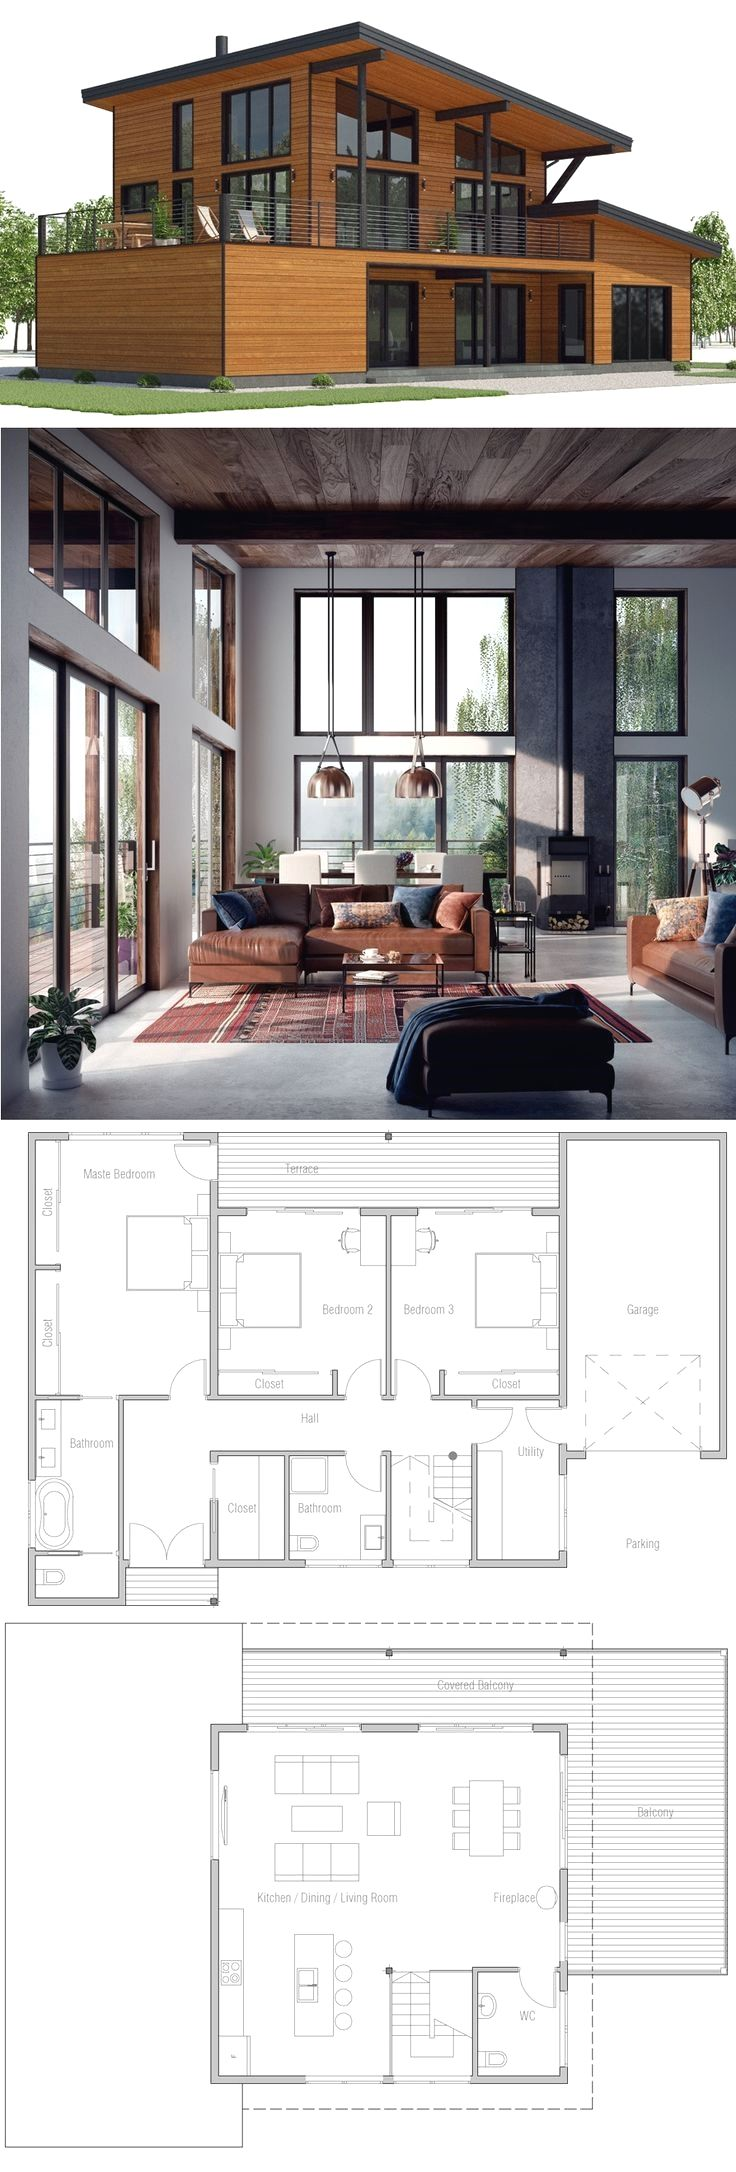 Modern Luxurylife Instaday Tendencia Instadaily Ideas Homes Luxuryhome Interior Arquitectura Architecture House House Plans House Layouts